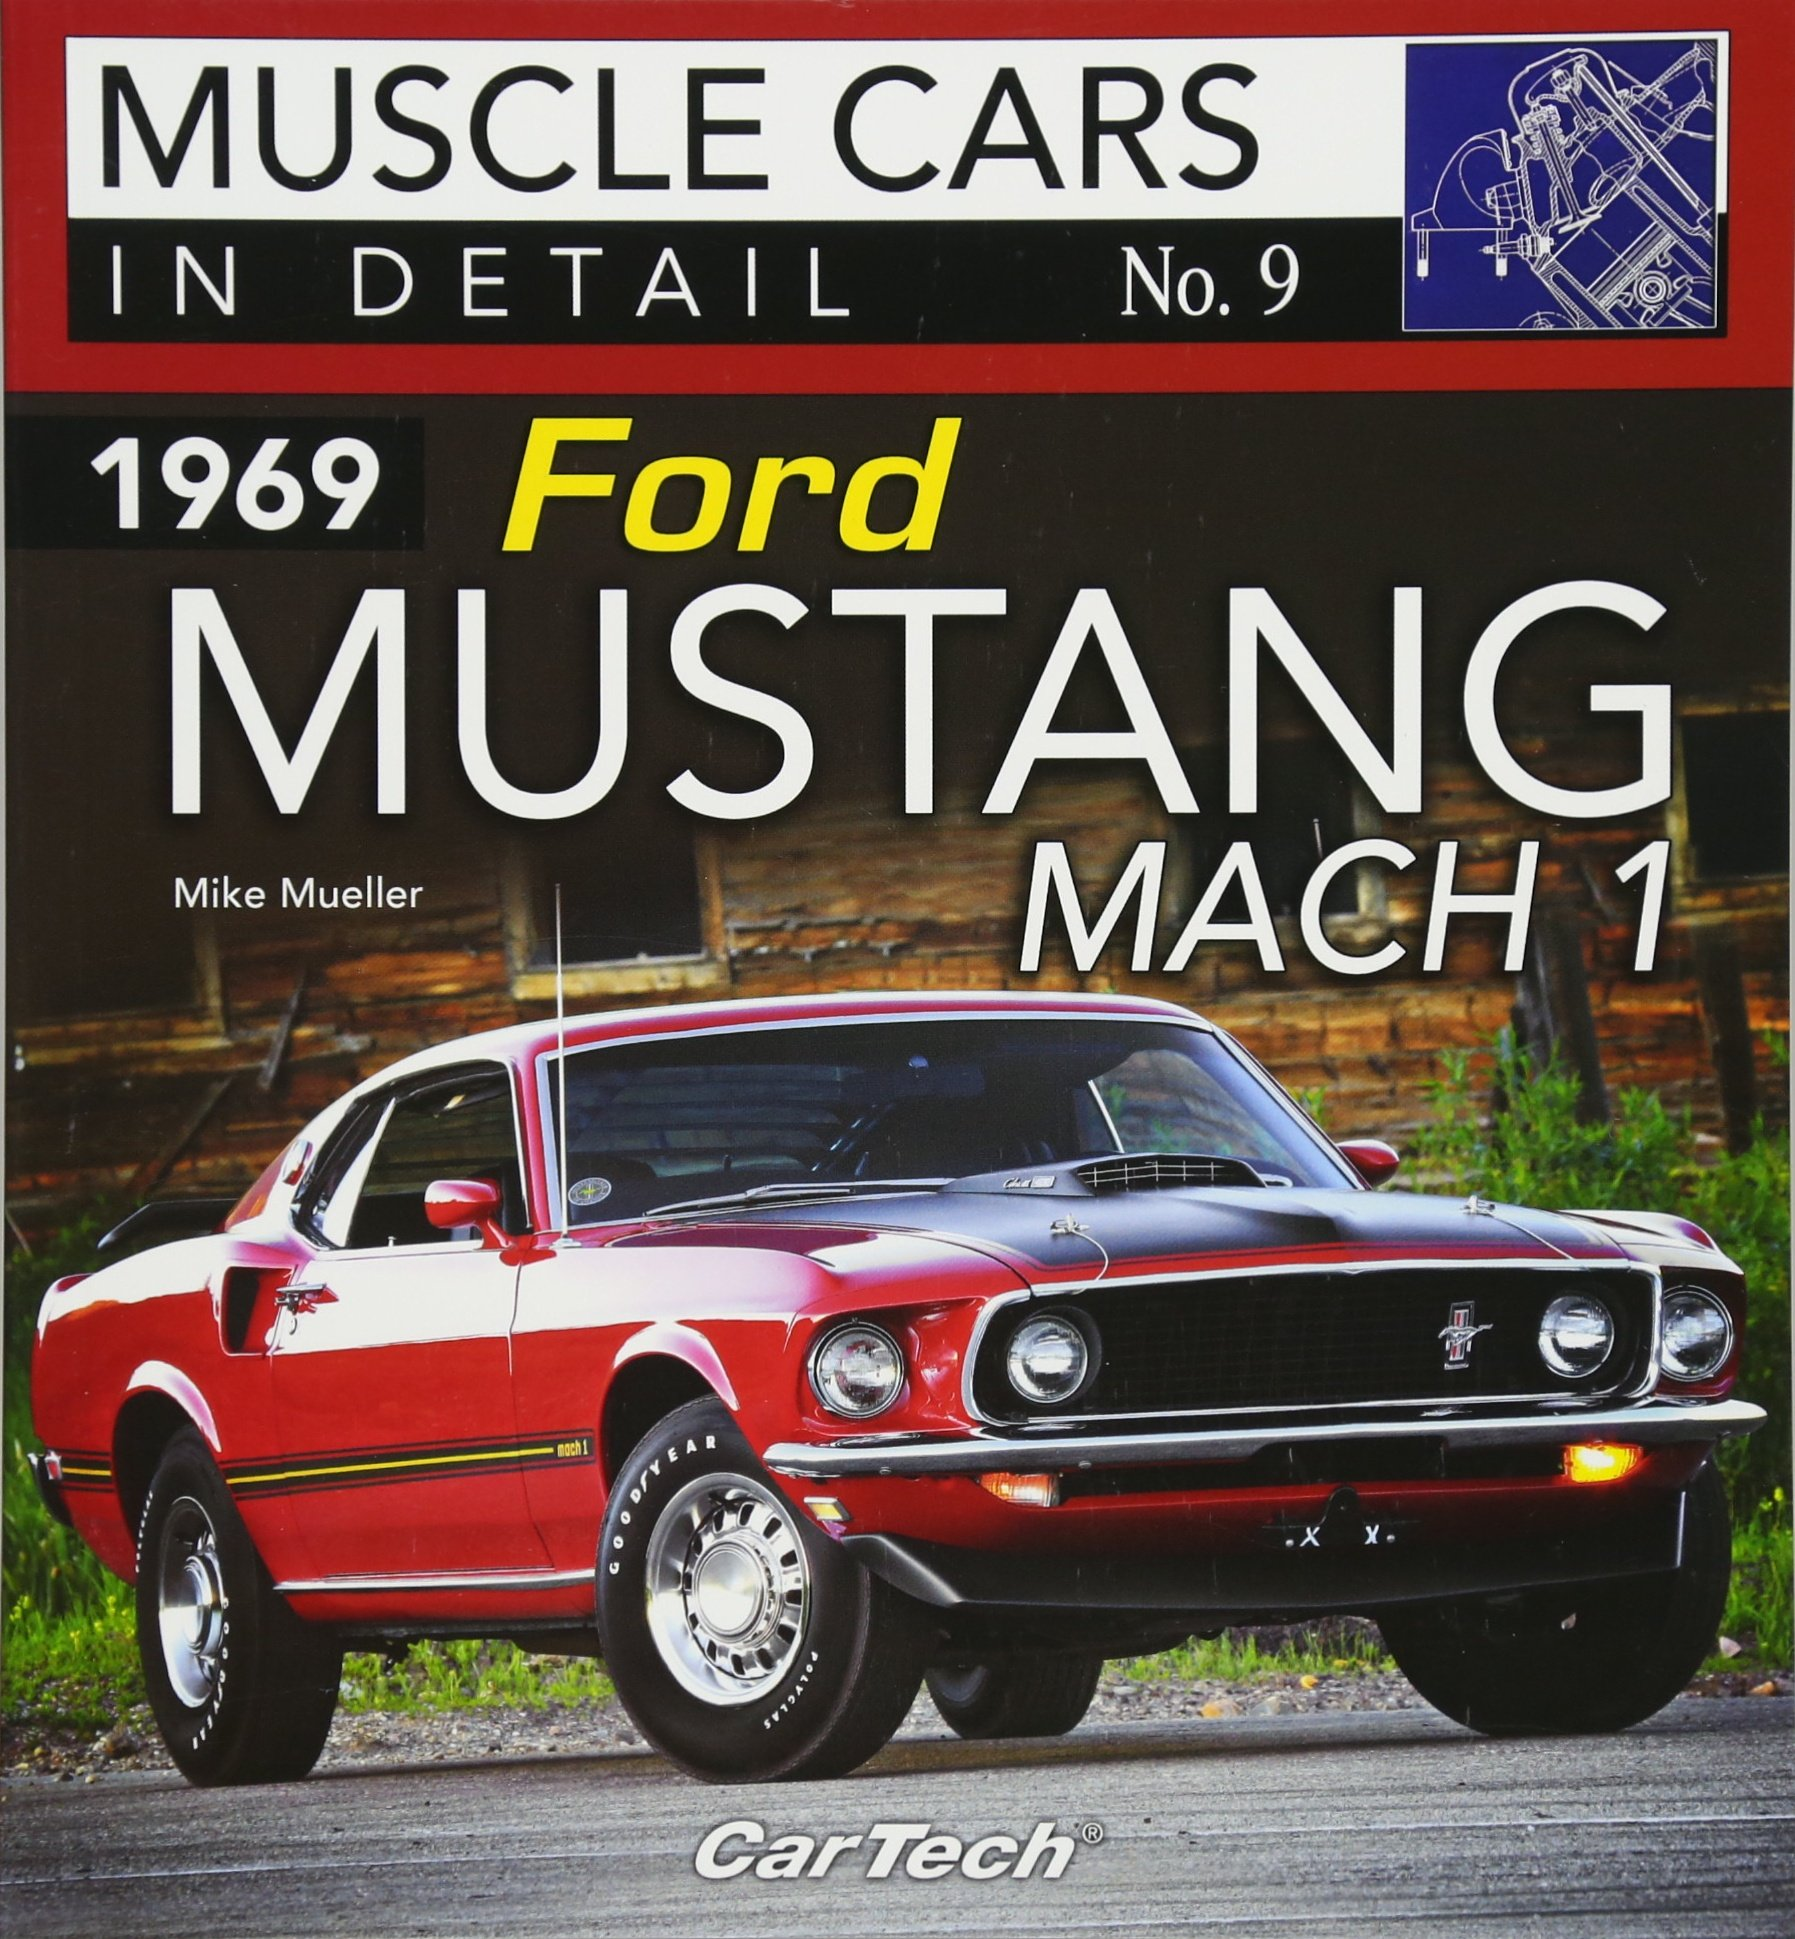 1969 ford mustang mach 1 muscle cars in detail no 9 paperback january 9 2018